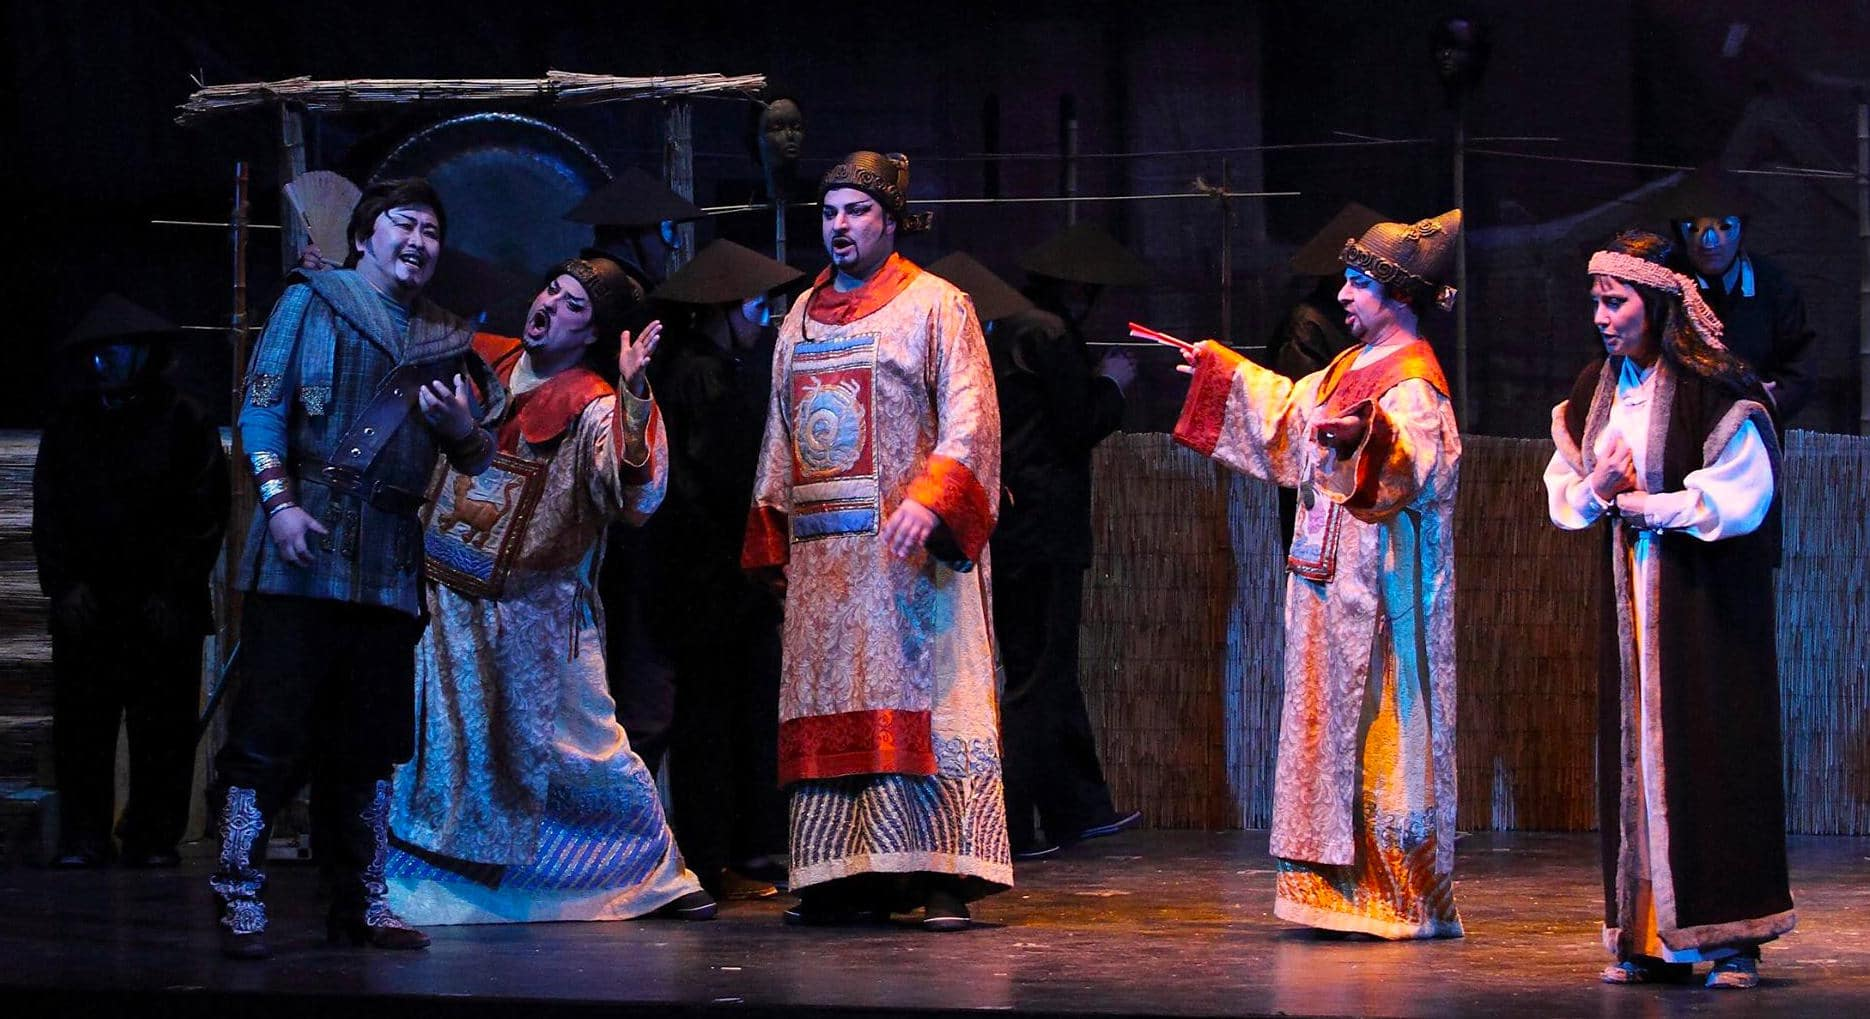 Puccini's TURANDOT - Teatro Lirico D'Europa Entertains a Packed House!